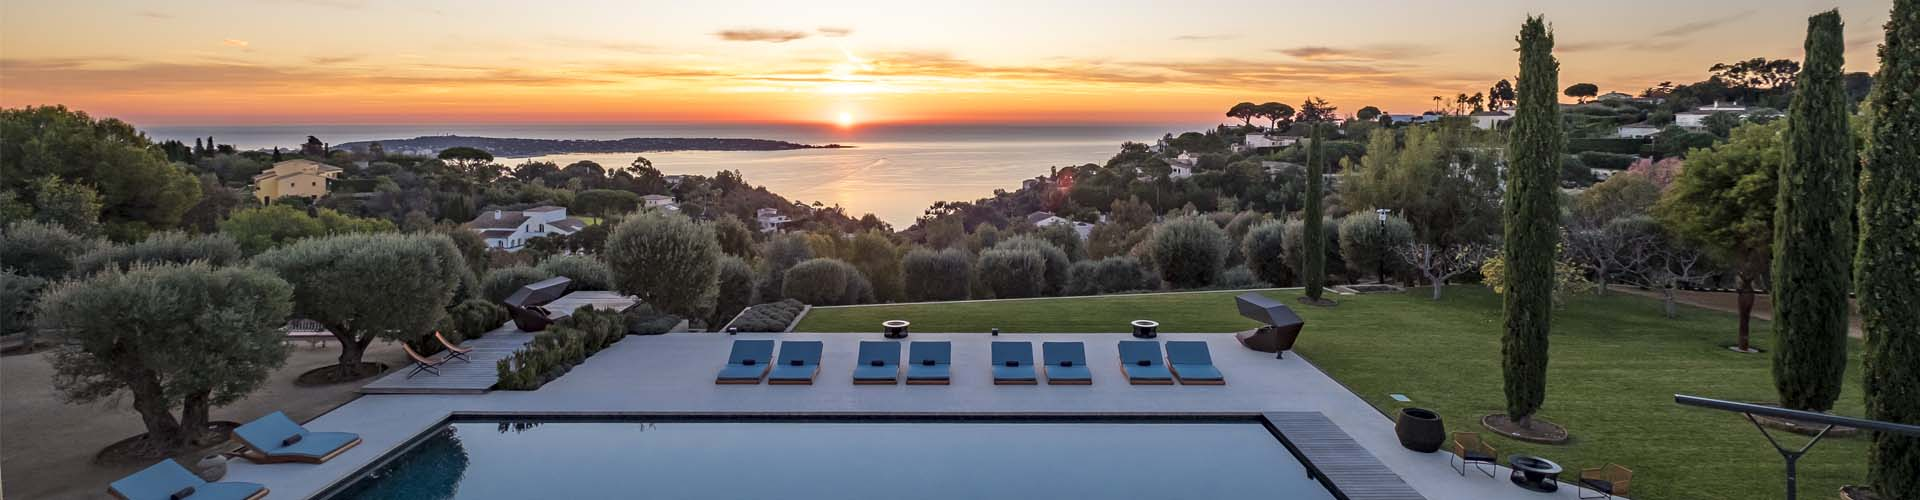 Wellness homes: Domaine de l'Ansa, surrounded by the greenery of the French Riviera